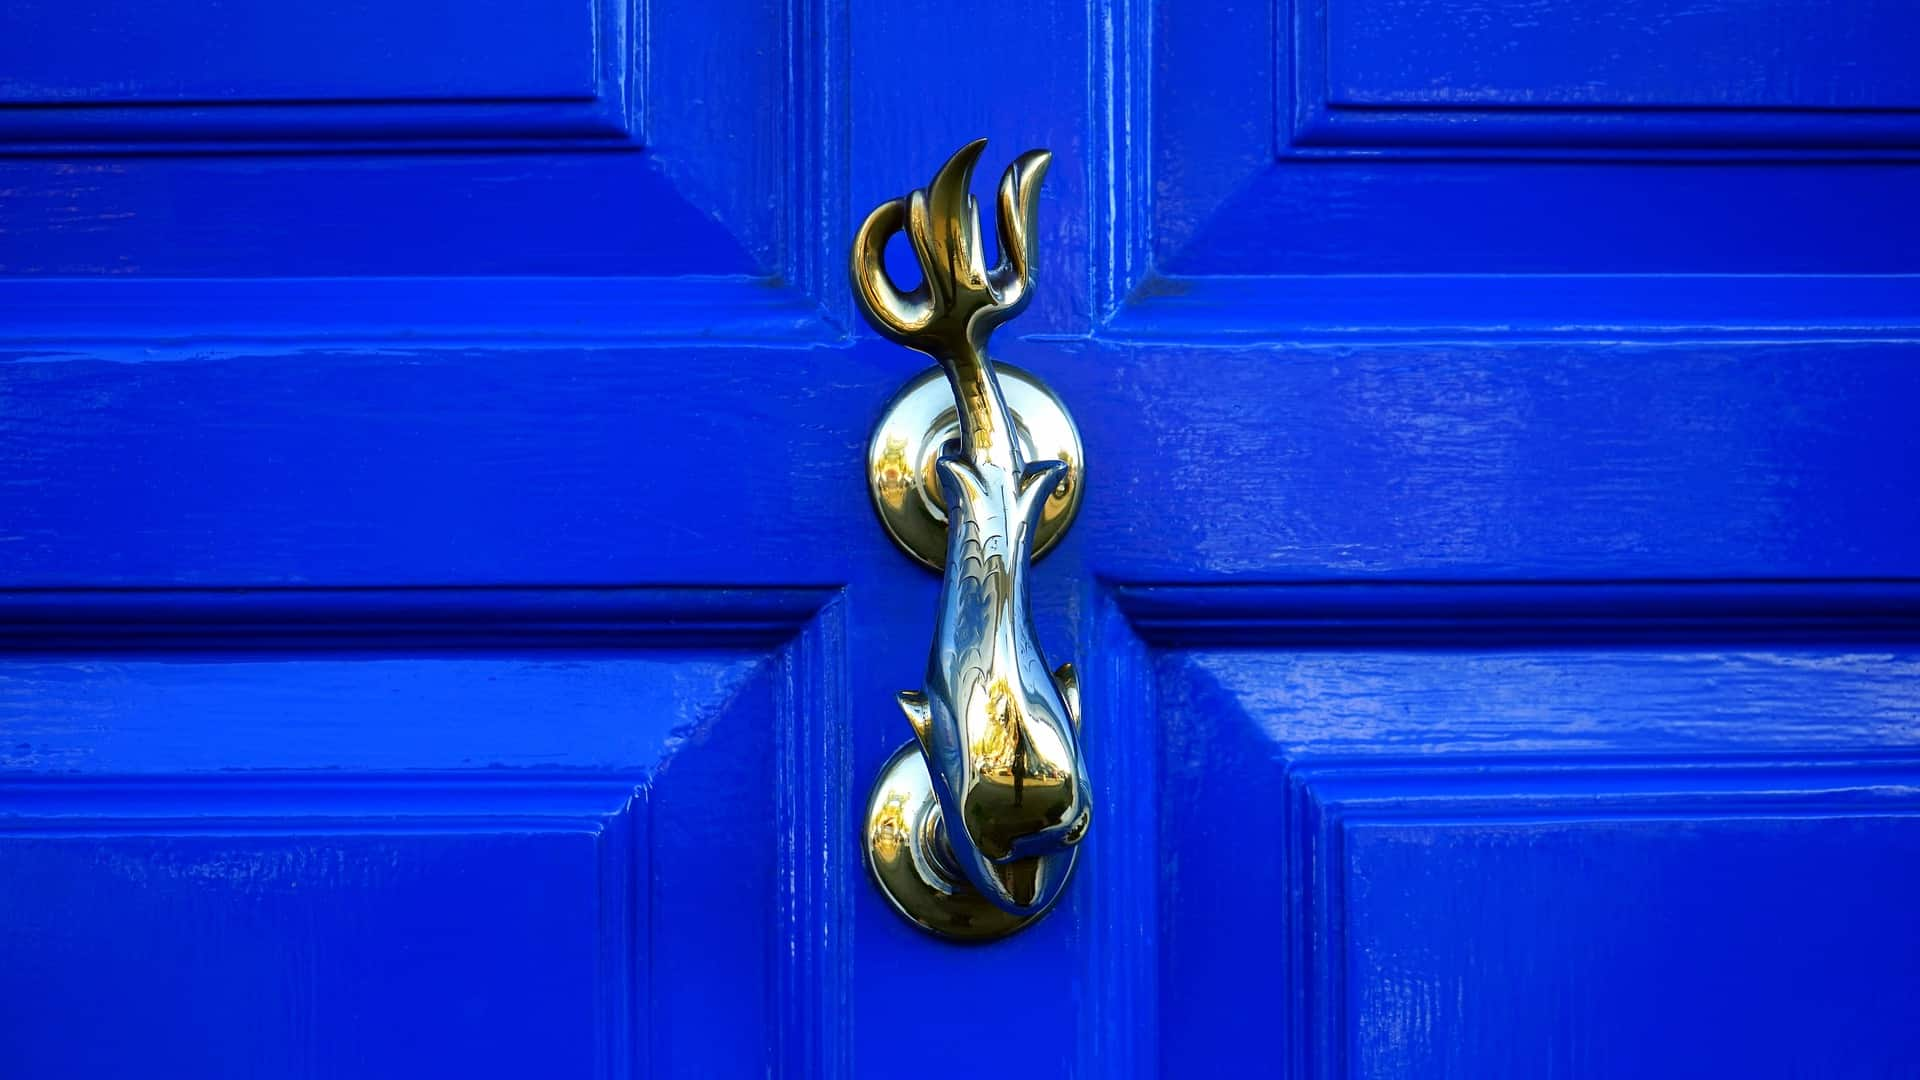 Curb appeal: Hang a unique door knocker  #curbAppealProjects #curbAppeal #houseExterior #homeExterior #homeExteriorIdeas #houseDesign